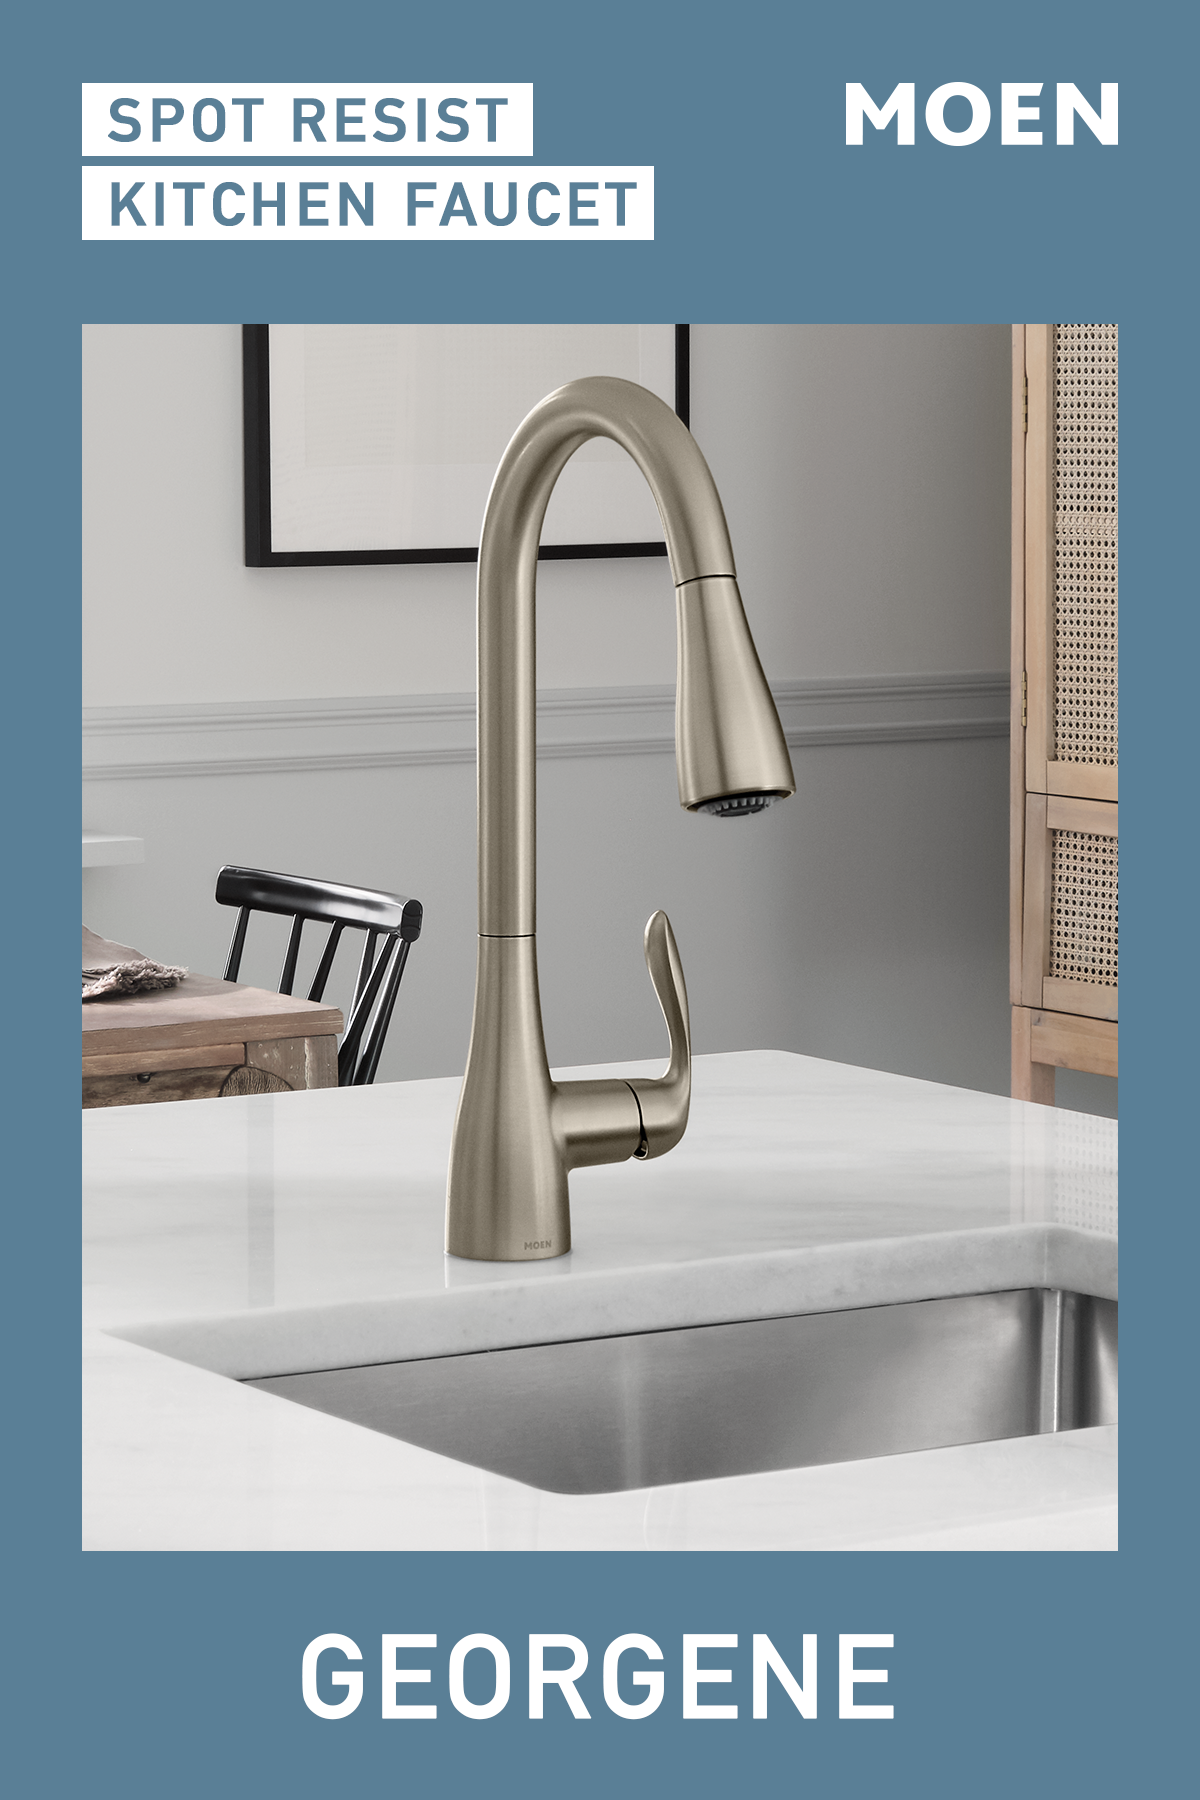 Maintain The Clean Kitchen Look You Love With Our Georgene Spot Resist Faucet Kitchen Sink Design Interior Paint Colors For Living Room Kitchen And Bath Design